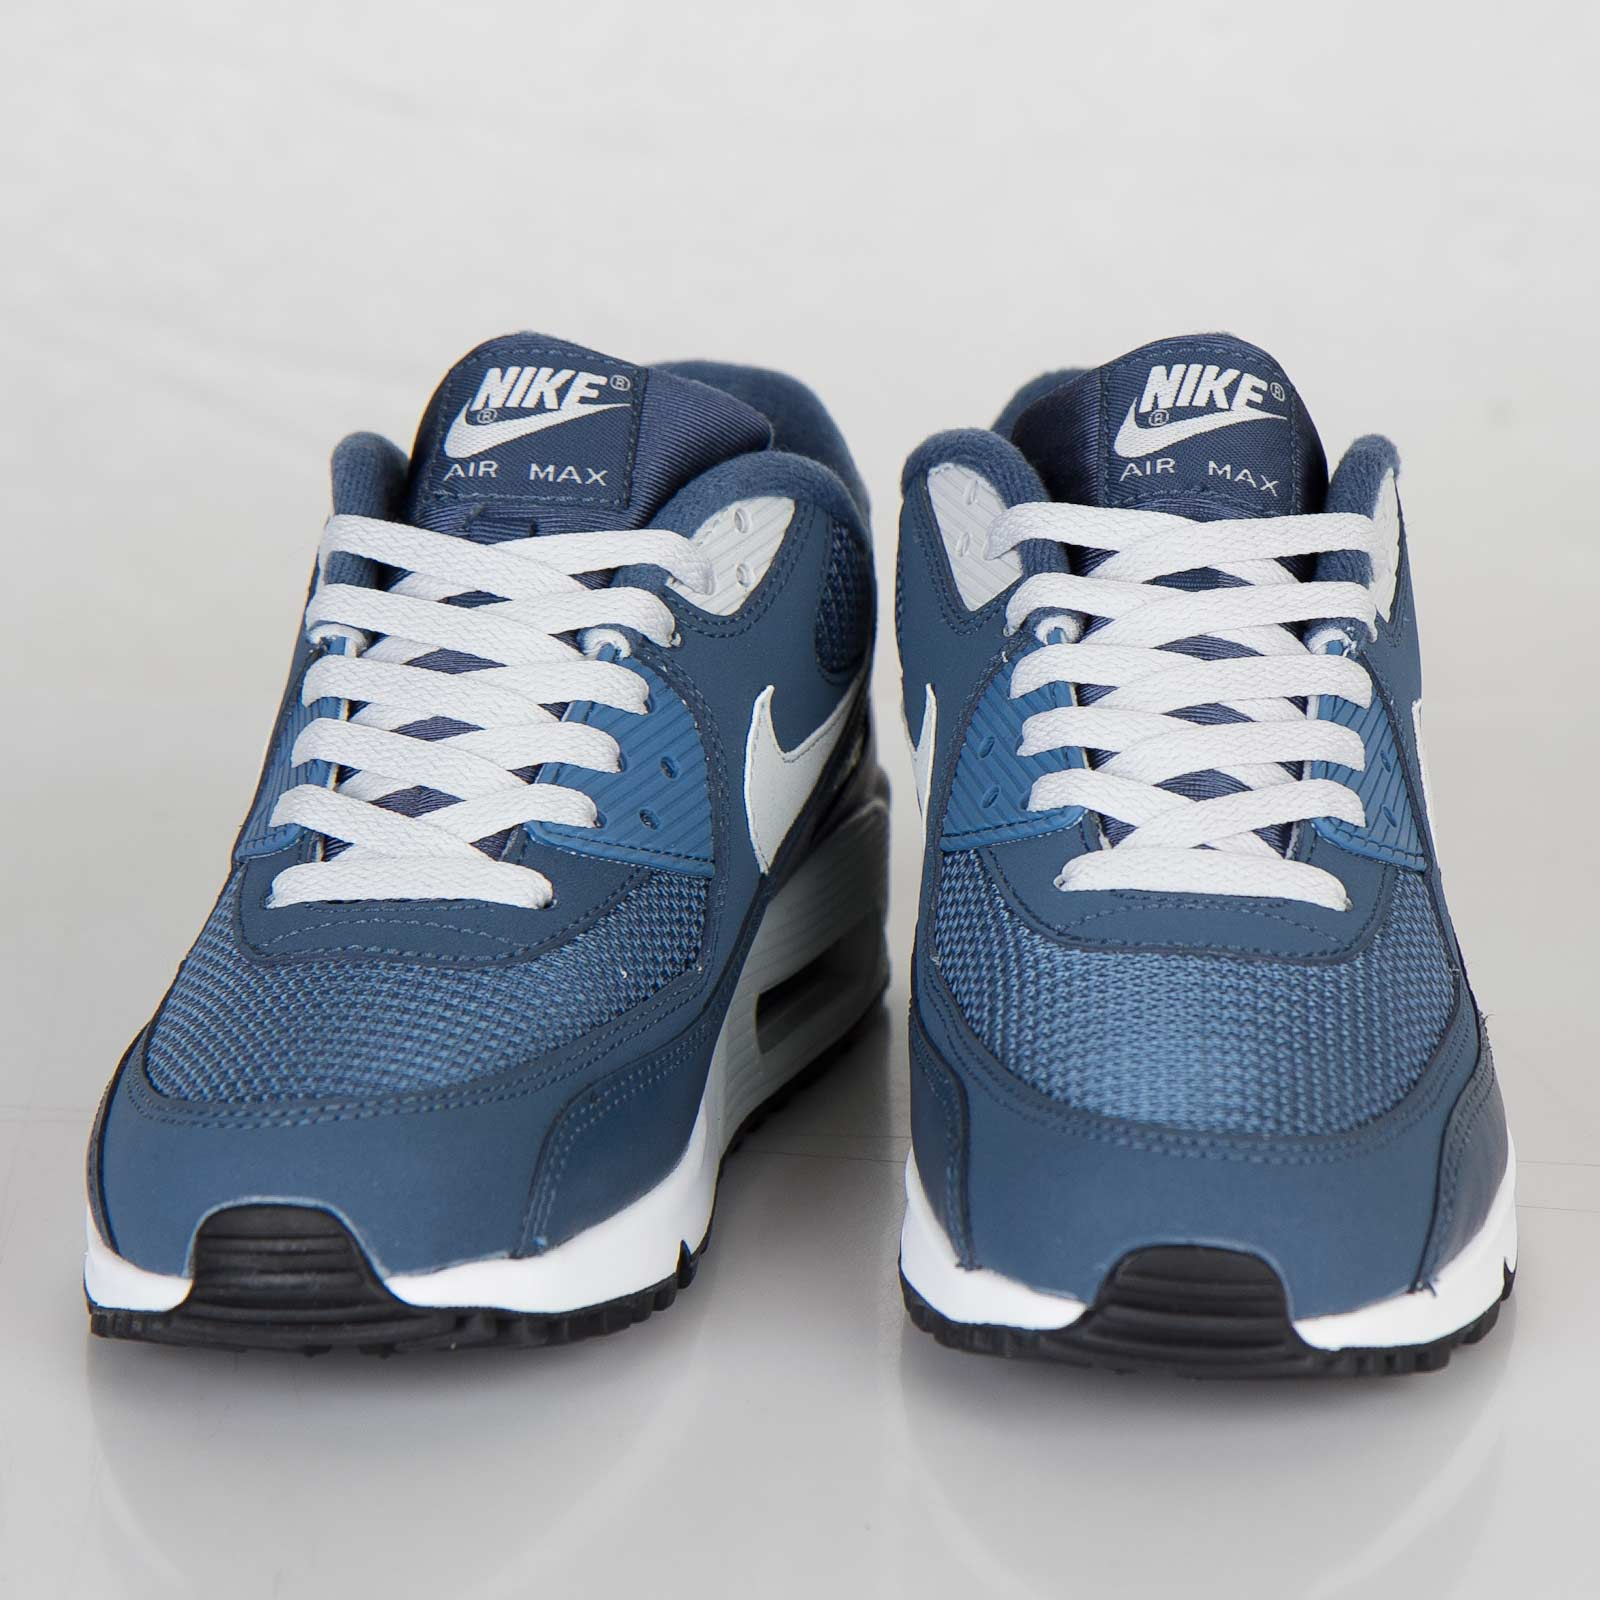 low cost 70e3b df8a1 Nike Air Max 90 Essential - 537384-405 - Sneakersnstuff   sneakers    streetwear online since 1999